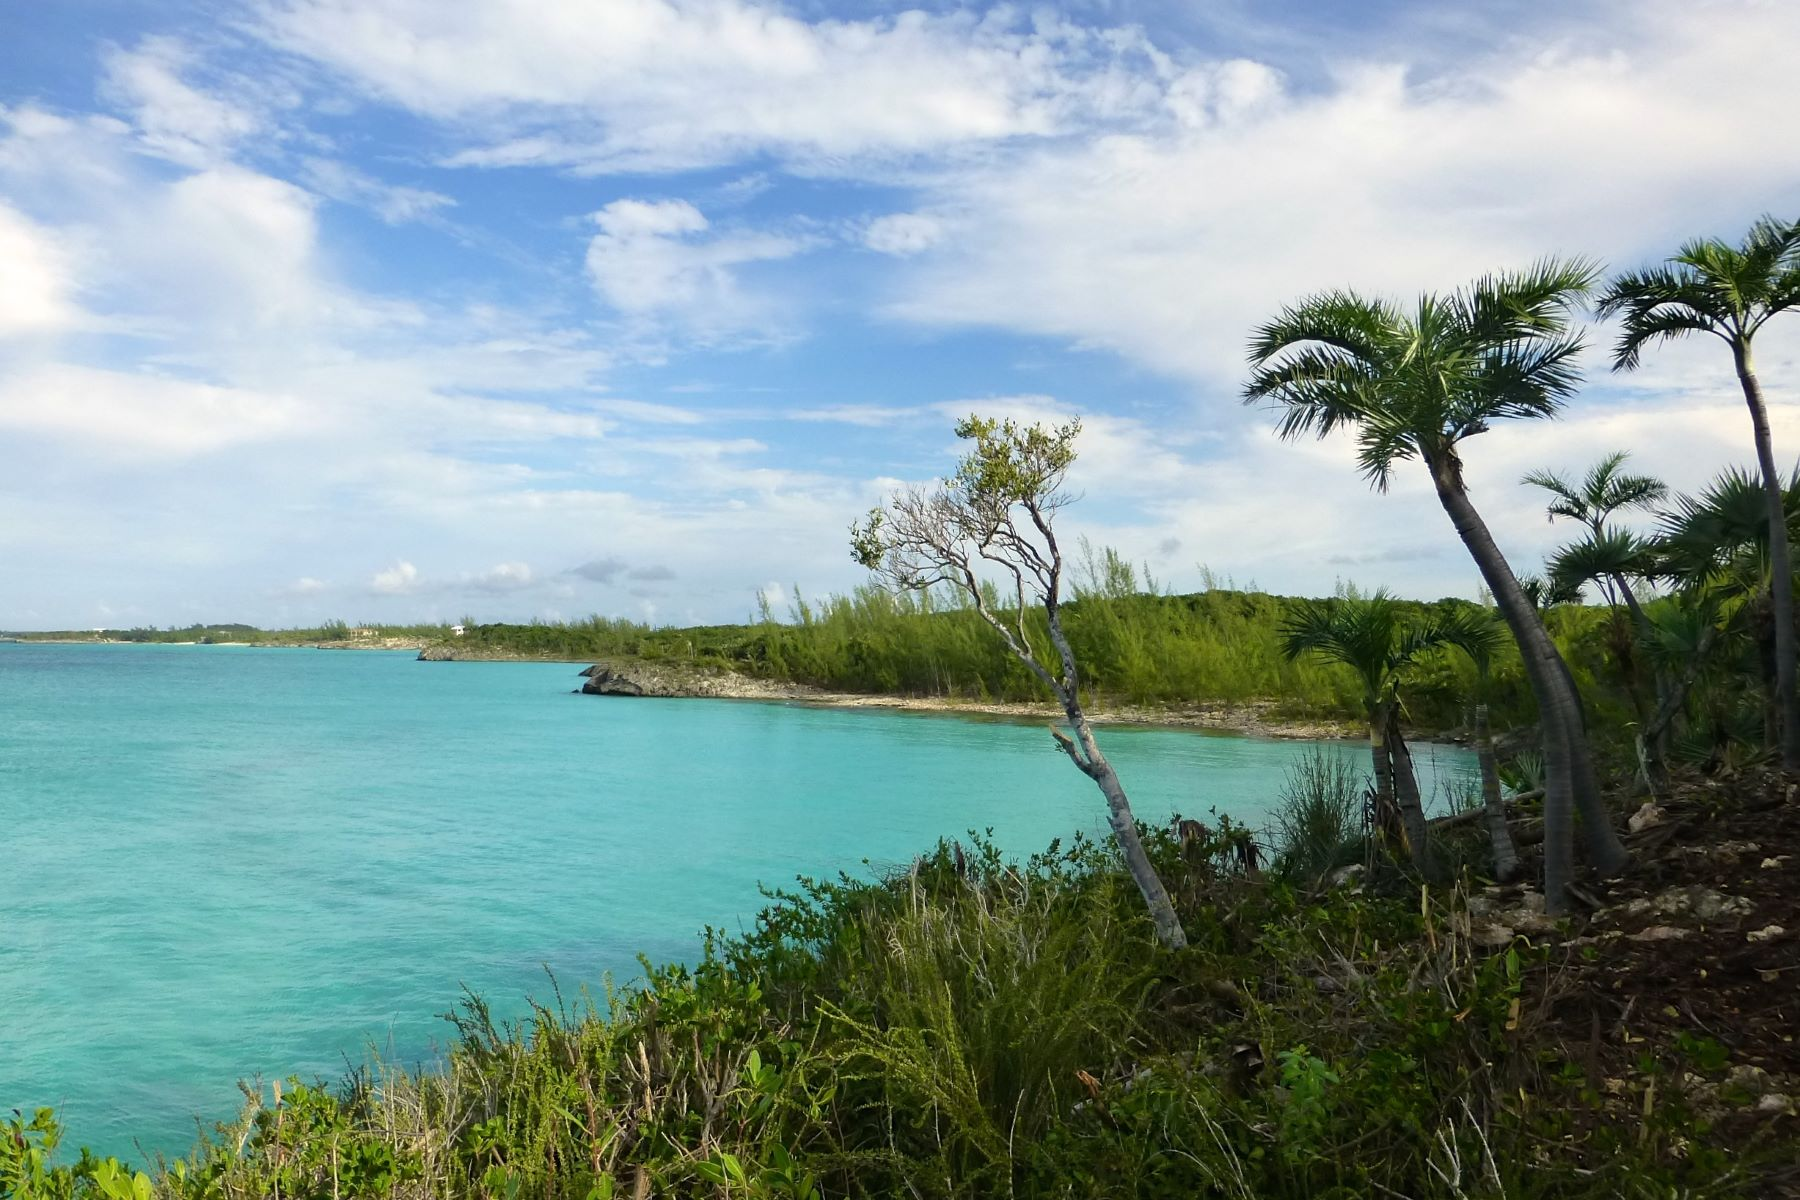 Land for Sale at Secluded Seaside Acreage Mutton Fish Point, Gregory Town, Eleuthera Bahamas